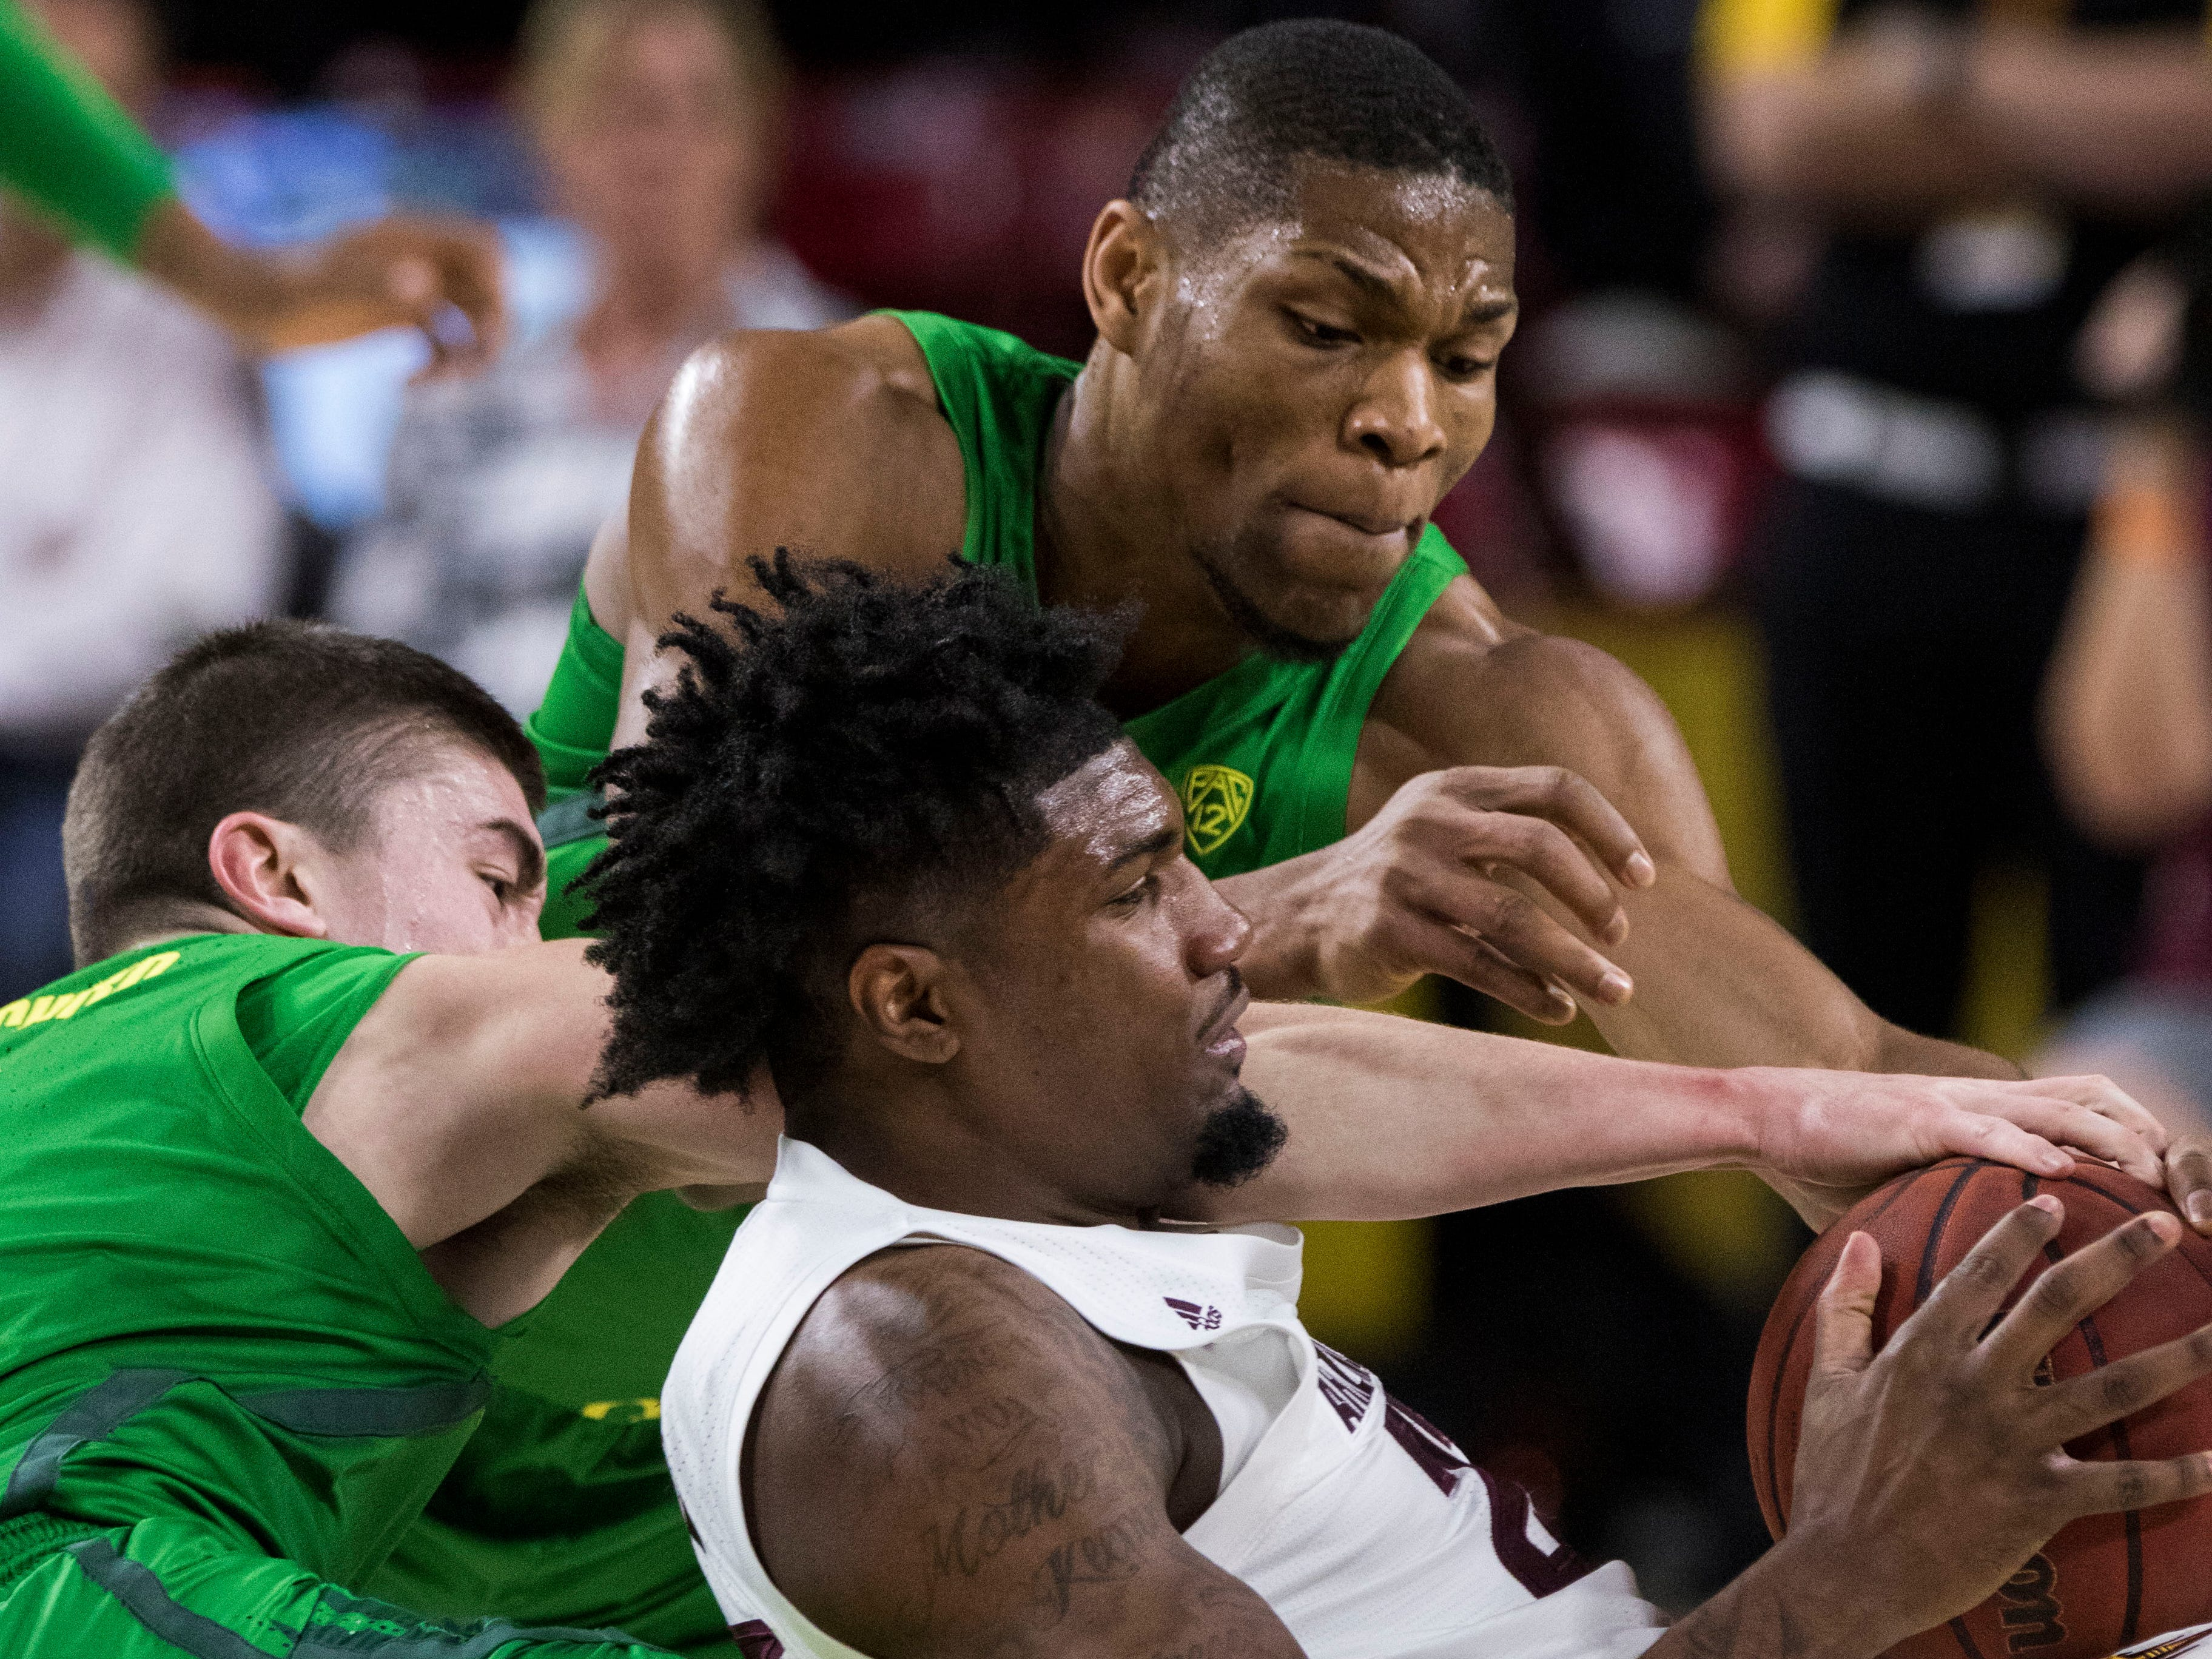 Arizona State's Romello White (23) controls the ball as he battles against Oregon's Payton Pritchard (3) and Francis Okoro (33) during the first half, Saturday, Jan. 19, 2019, in Tempe, Ariz. (AP Photo/Darryl Webb)